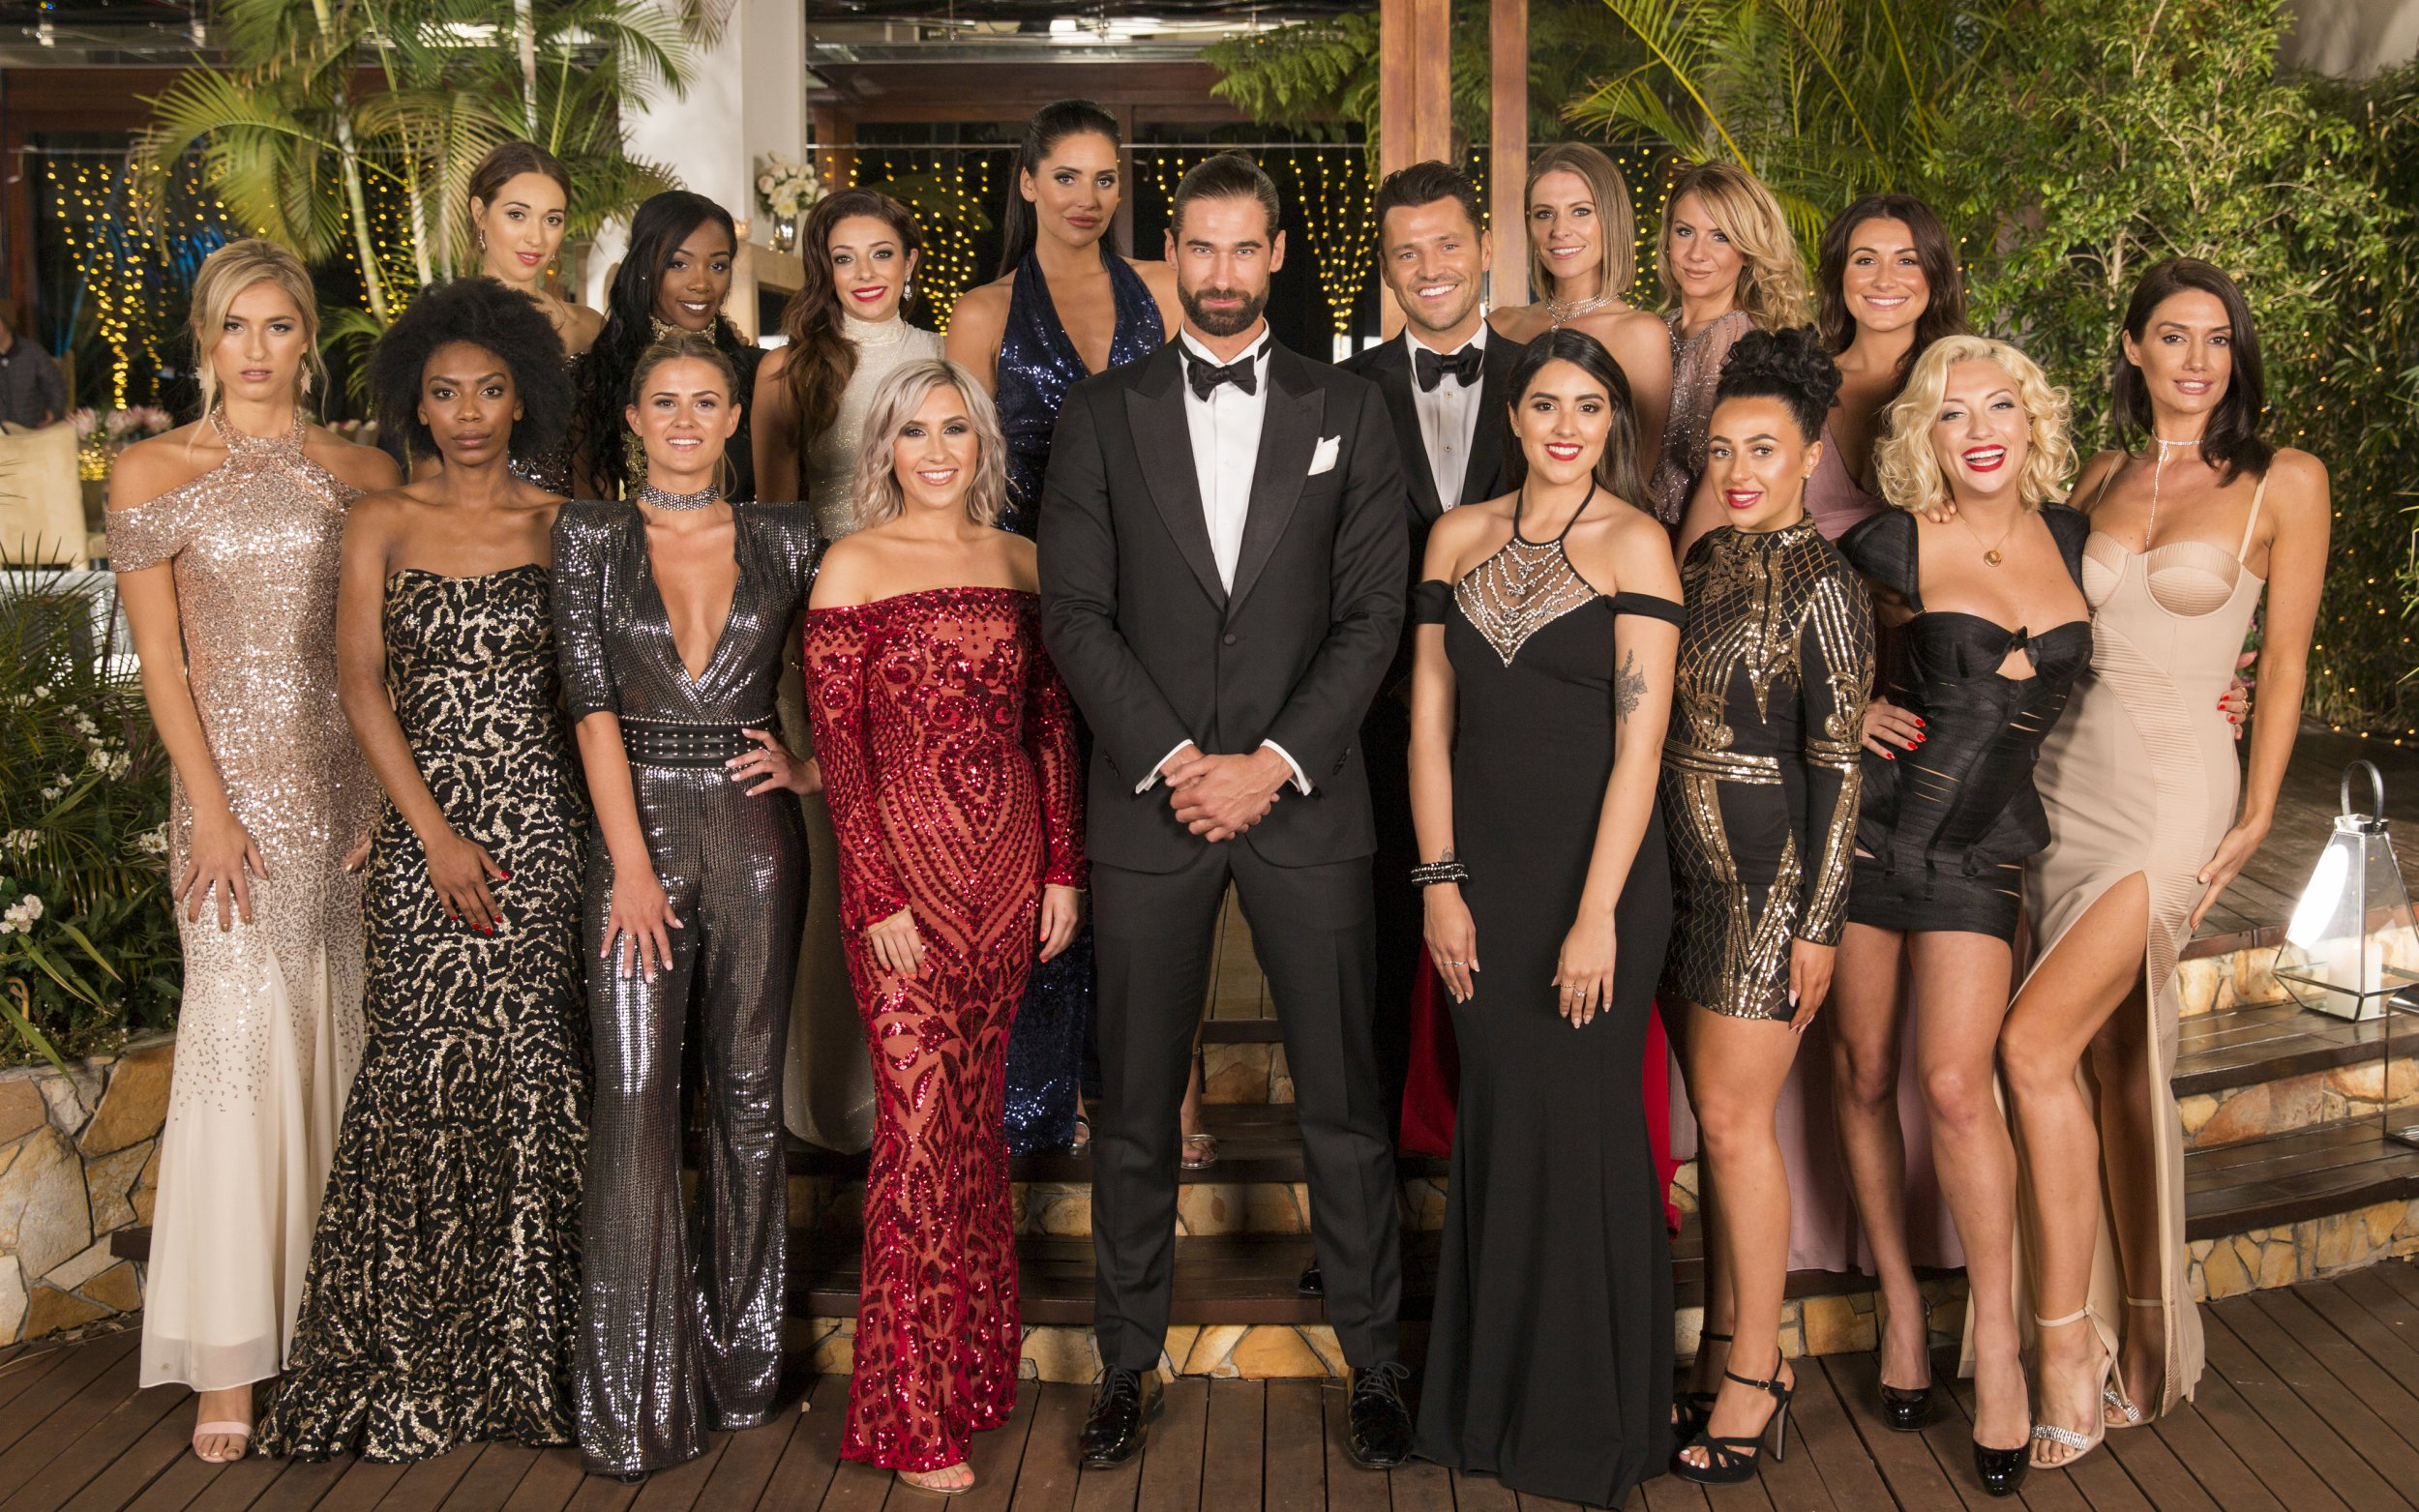 The contestants on The Bachelor and Alex Marks